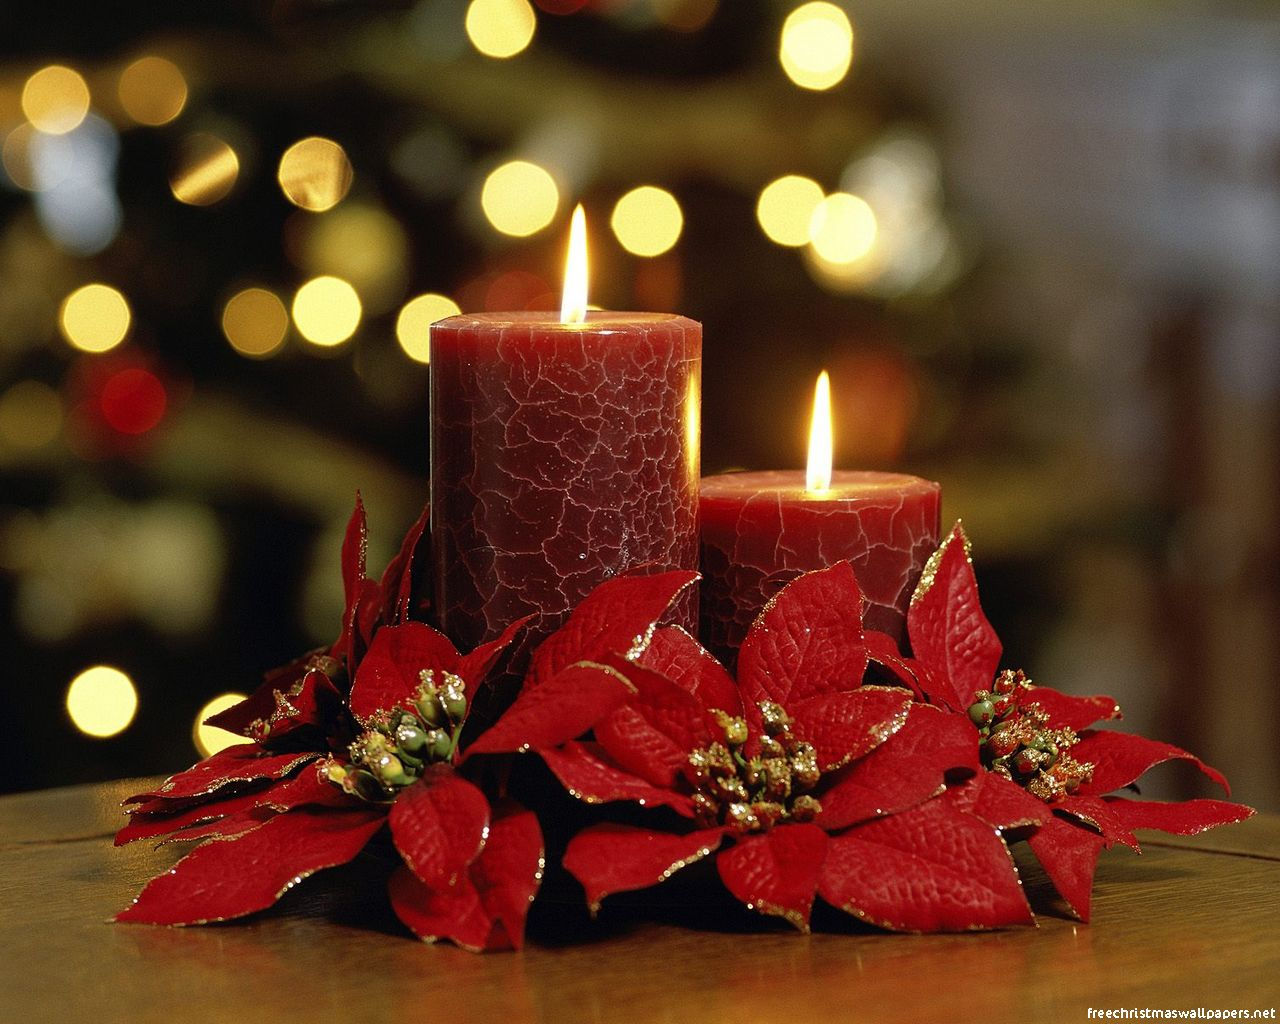 Pretty Christmas Candle Wallpaper 41080 1920x1200 px